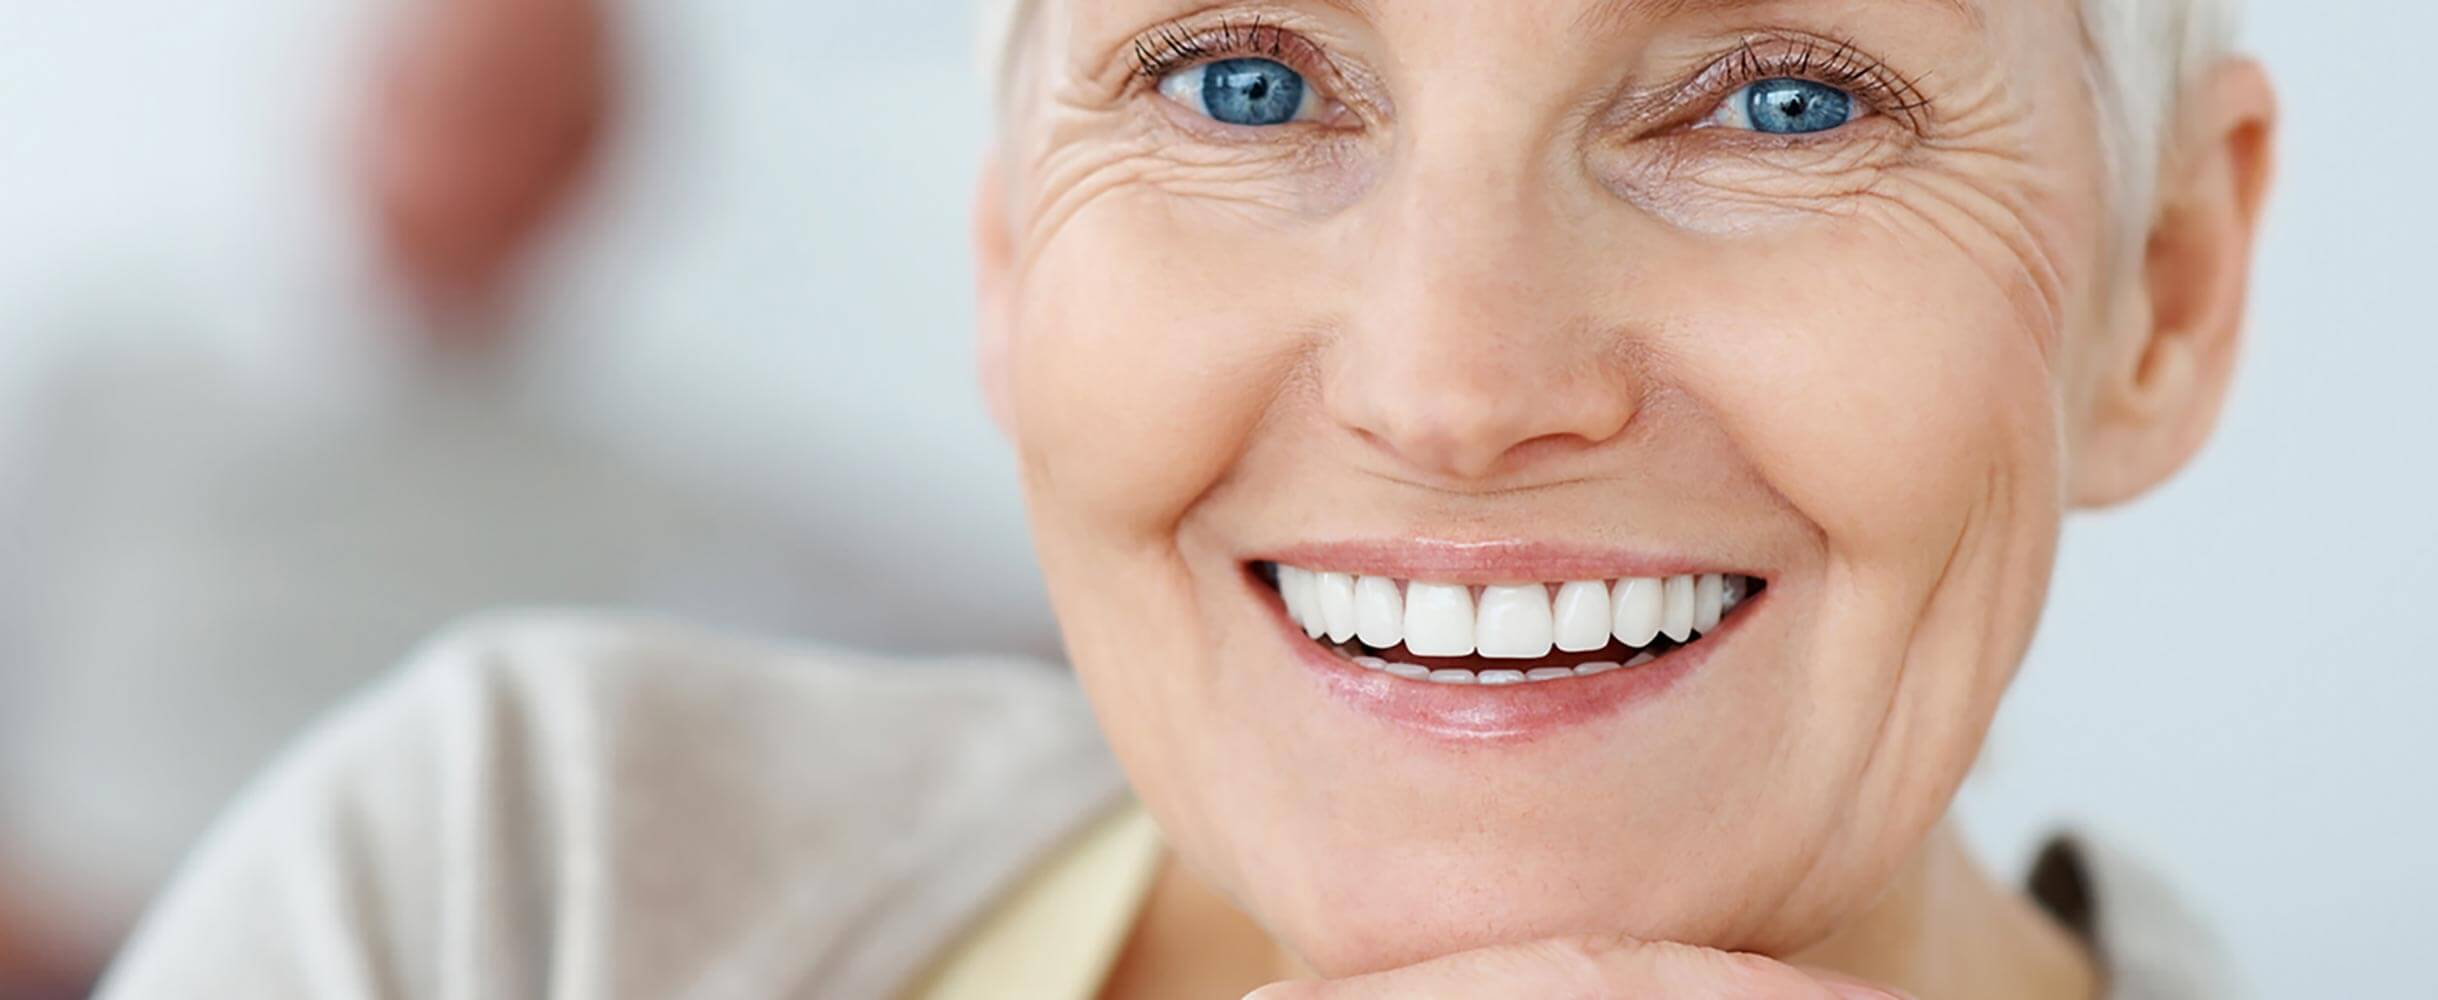 A senior lady smiling with her new dentures